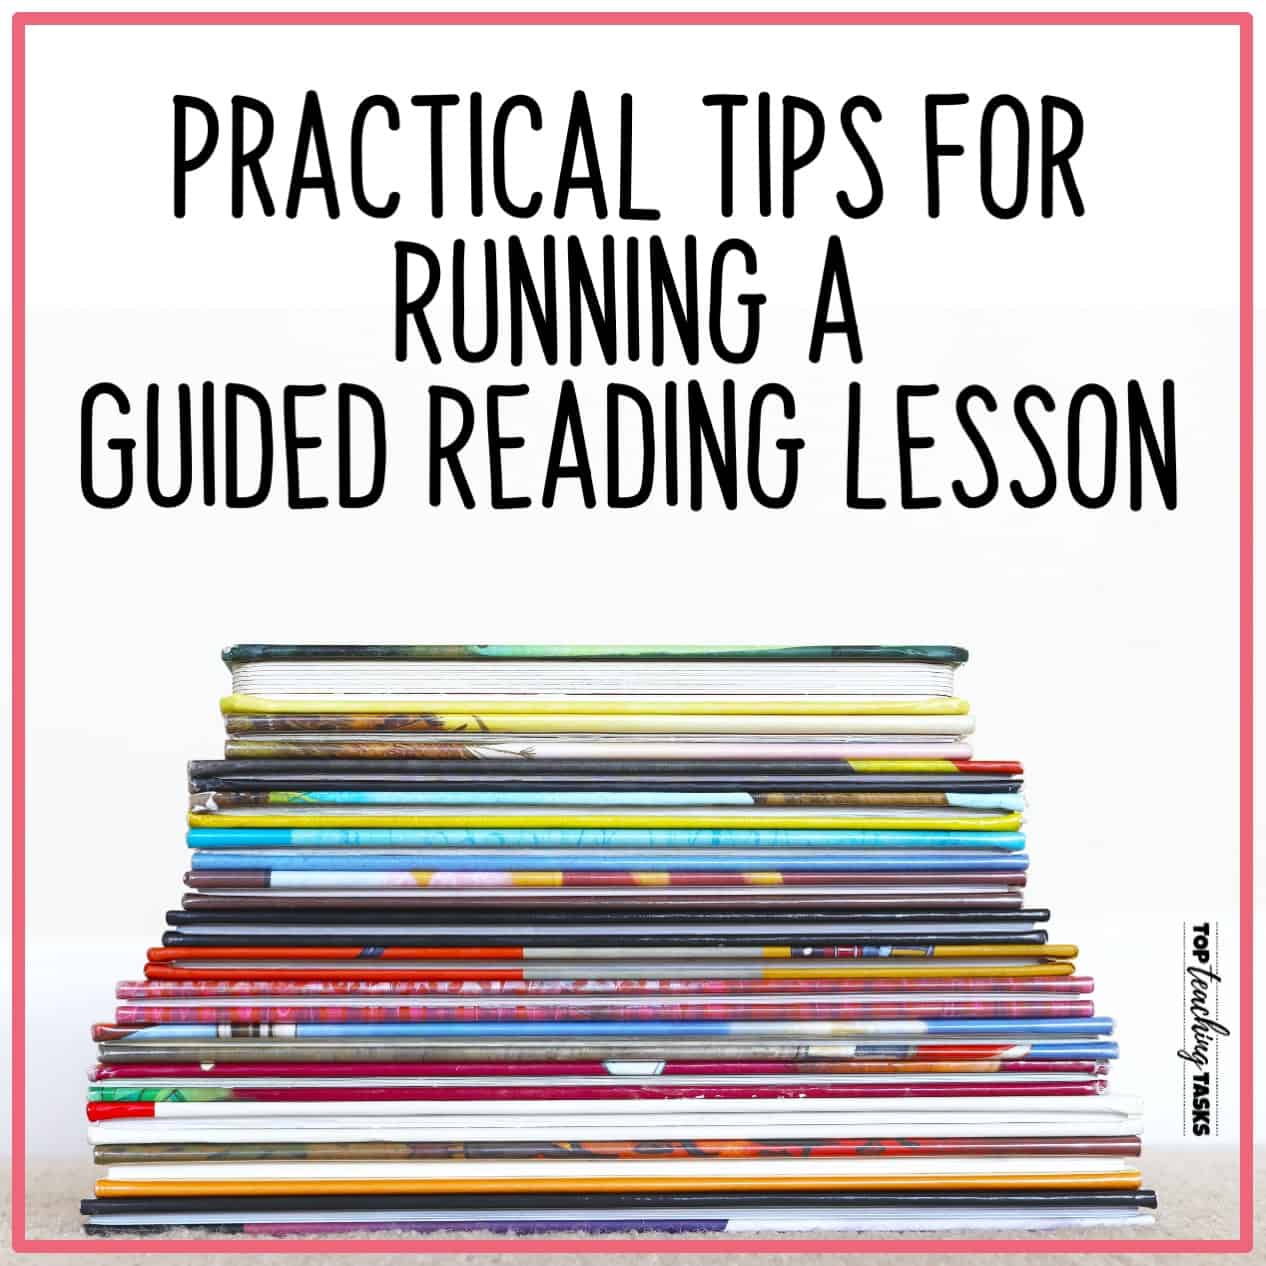 Practical Tips for Running a Guided Reading Session